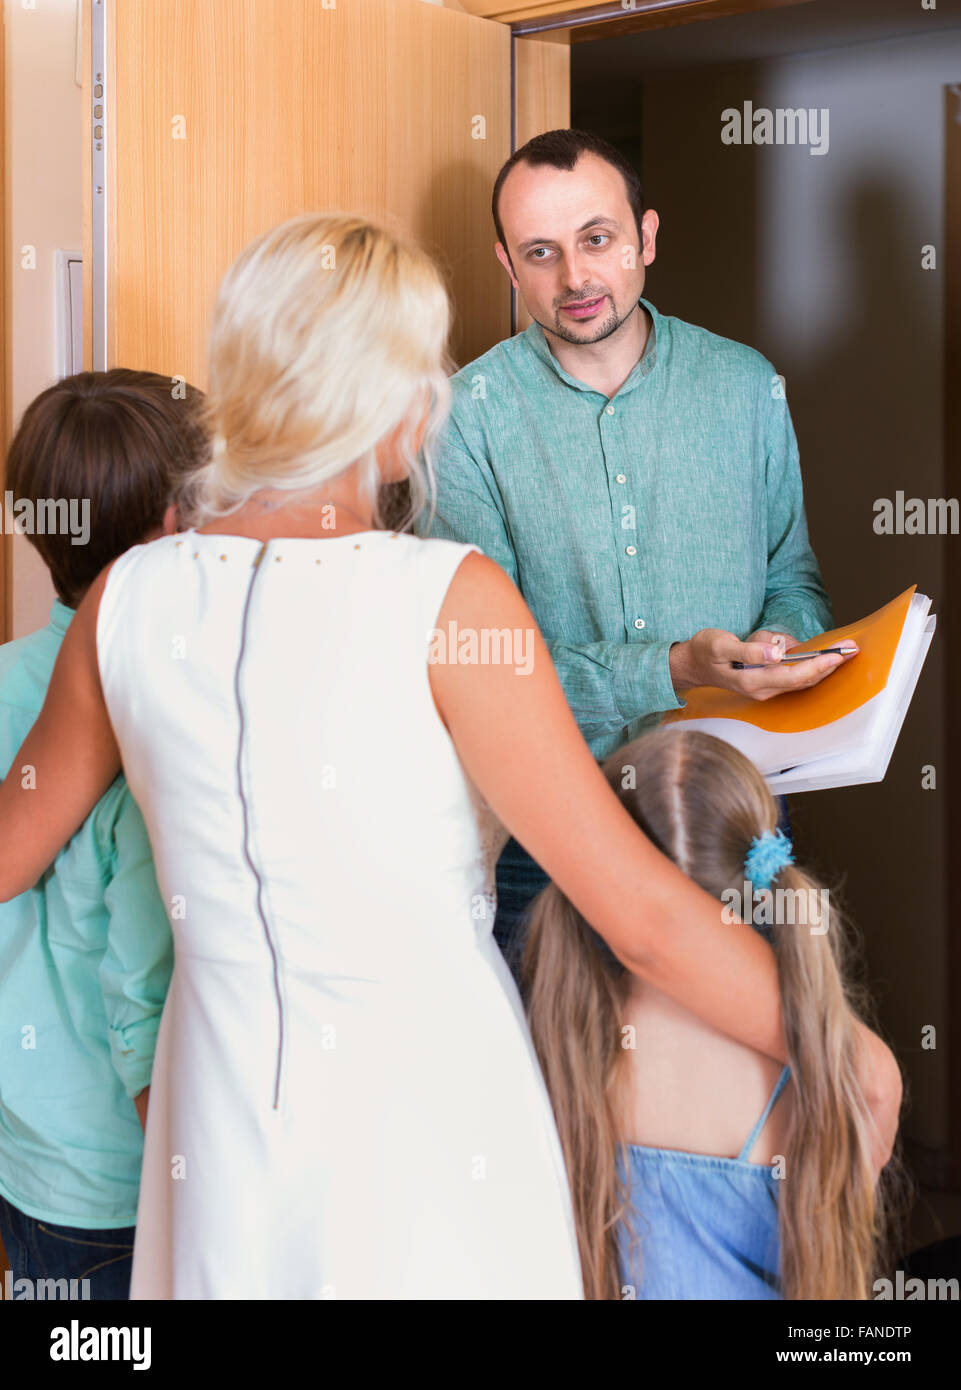 Serious collector trying to collect debt from  family with children standing on doorstep - Stock Image